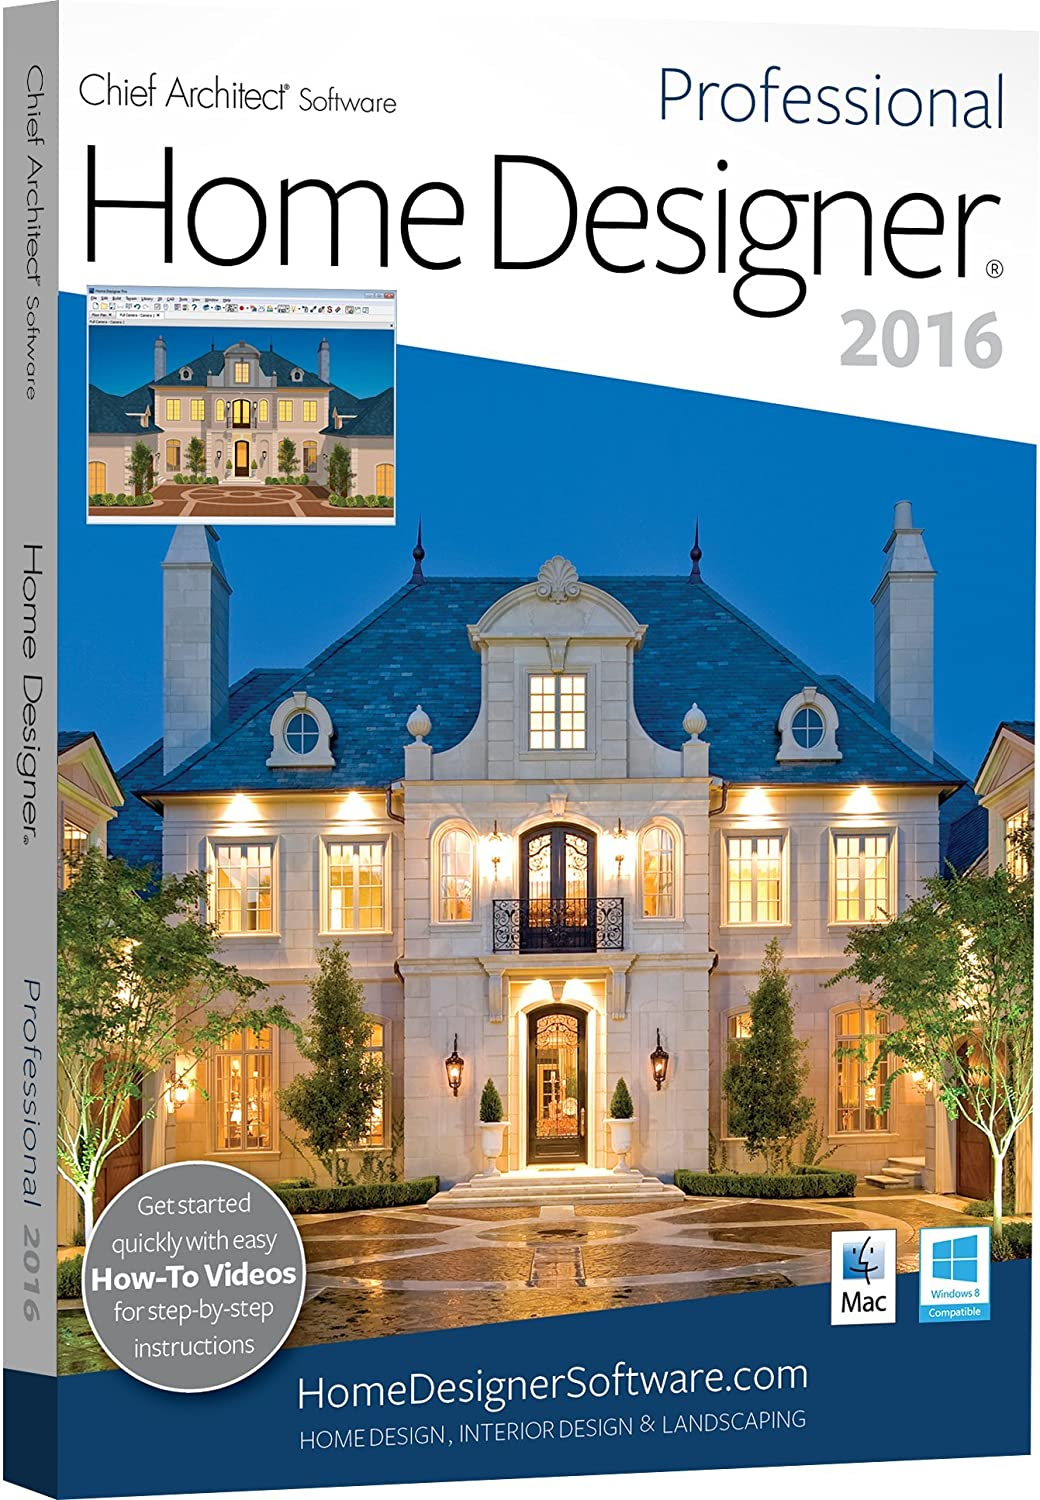 Amazon.com: Chief Architect Home Designer Pro 2016: Software